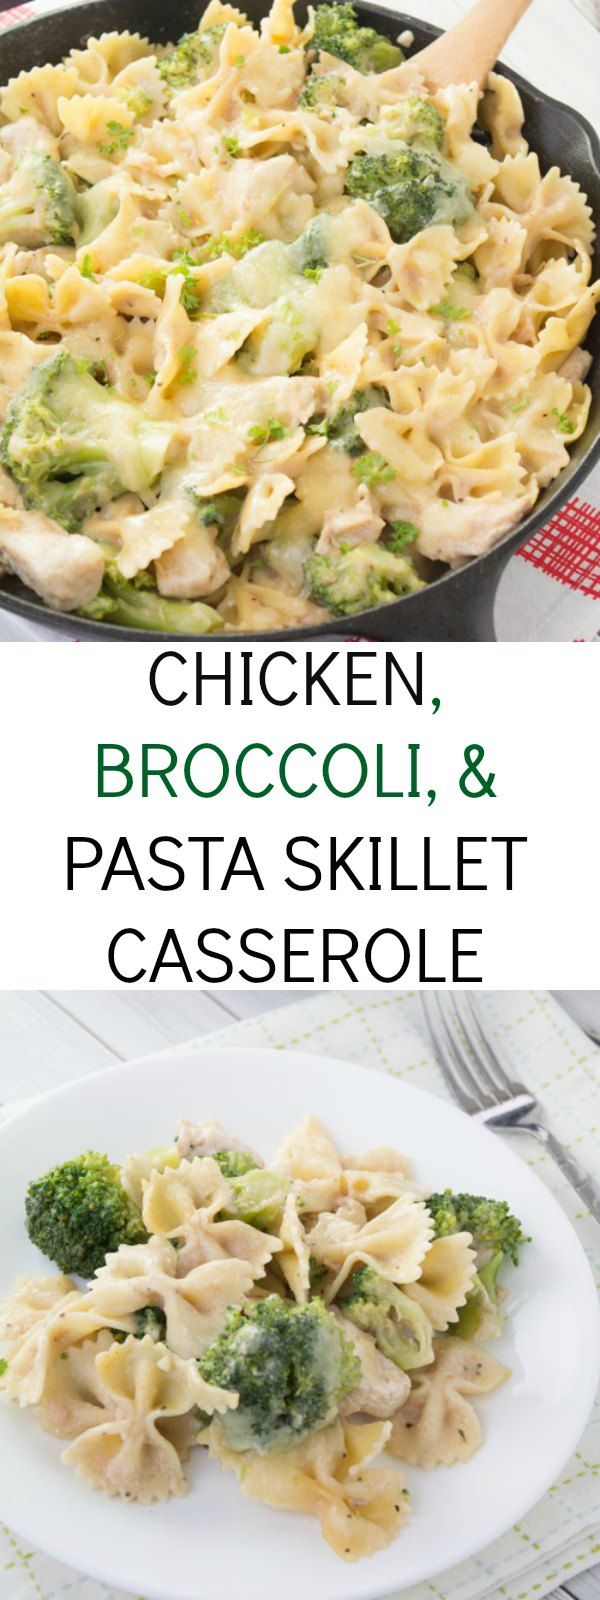 Chicken, Broccoli,  Pasta Skillet Casserole  Recipe -2402